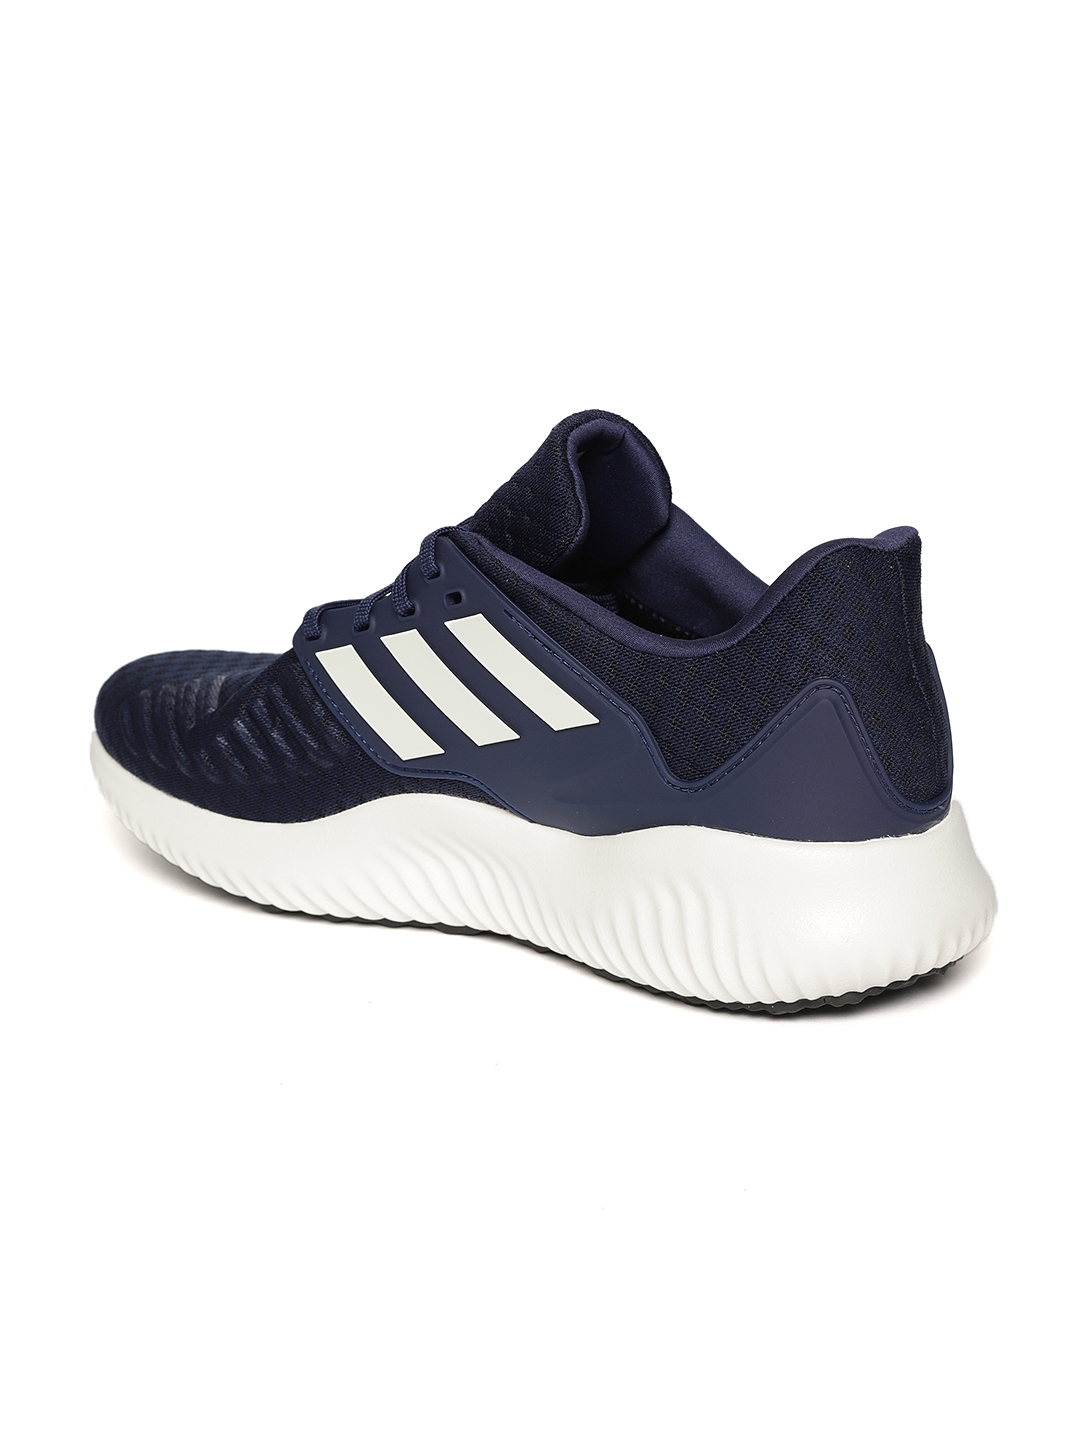 pick up 3fef6 1c9ab ADIDAS Men Navy Alphabounce RC.2 Running Shoes